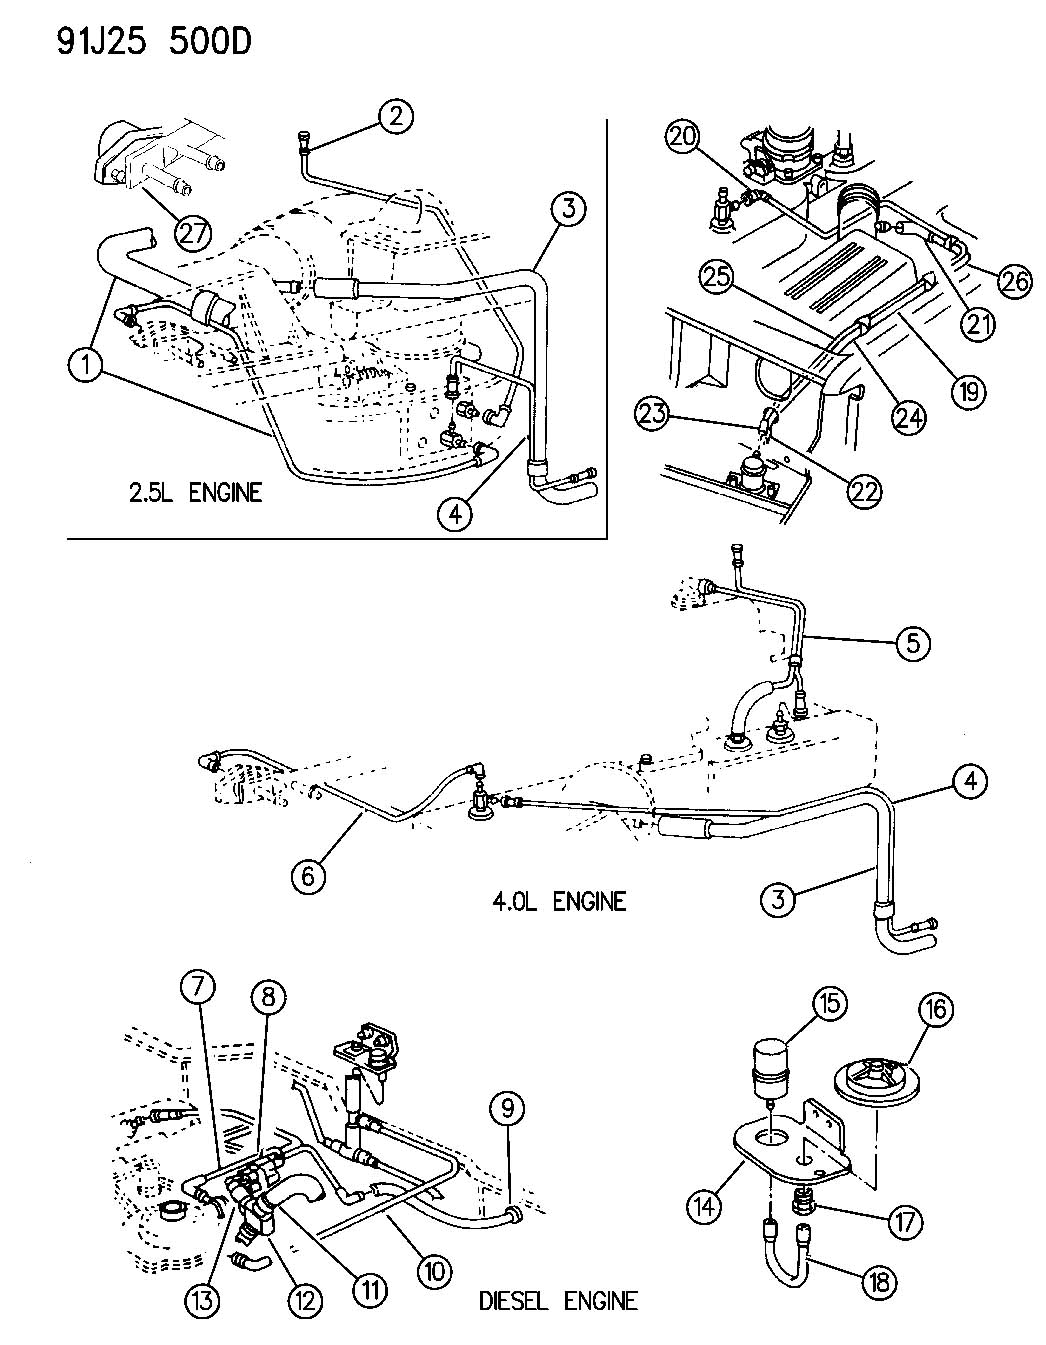 1988 Jeep Wrangler 25l I Need Vacuum Diagramfour Wheel Drive Wire 11038d1169031945ldrreversalldrcircuitpng Lines Shot List Of Replacements Forum Rh Wranglerforum Com